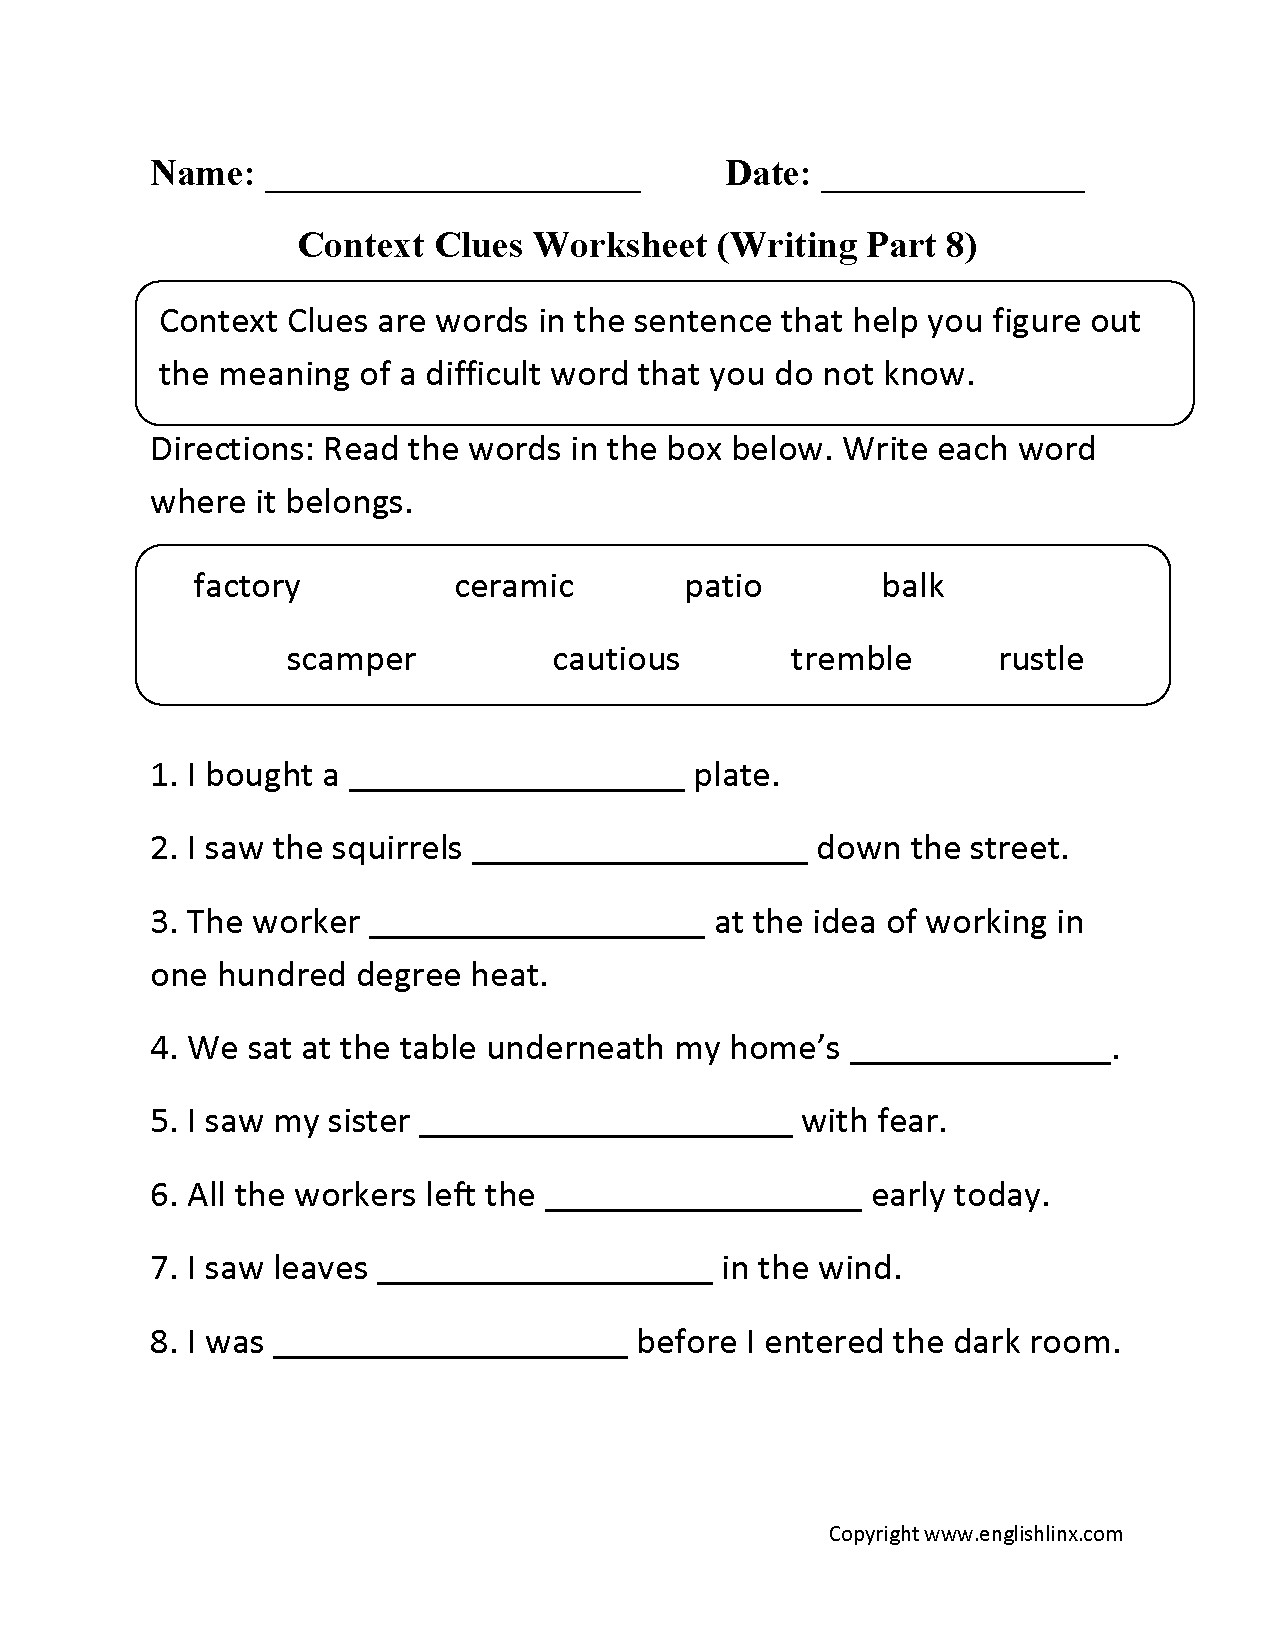 Context Clues 5th Grade Worksheets 7th Grade Context Clues Worksheets